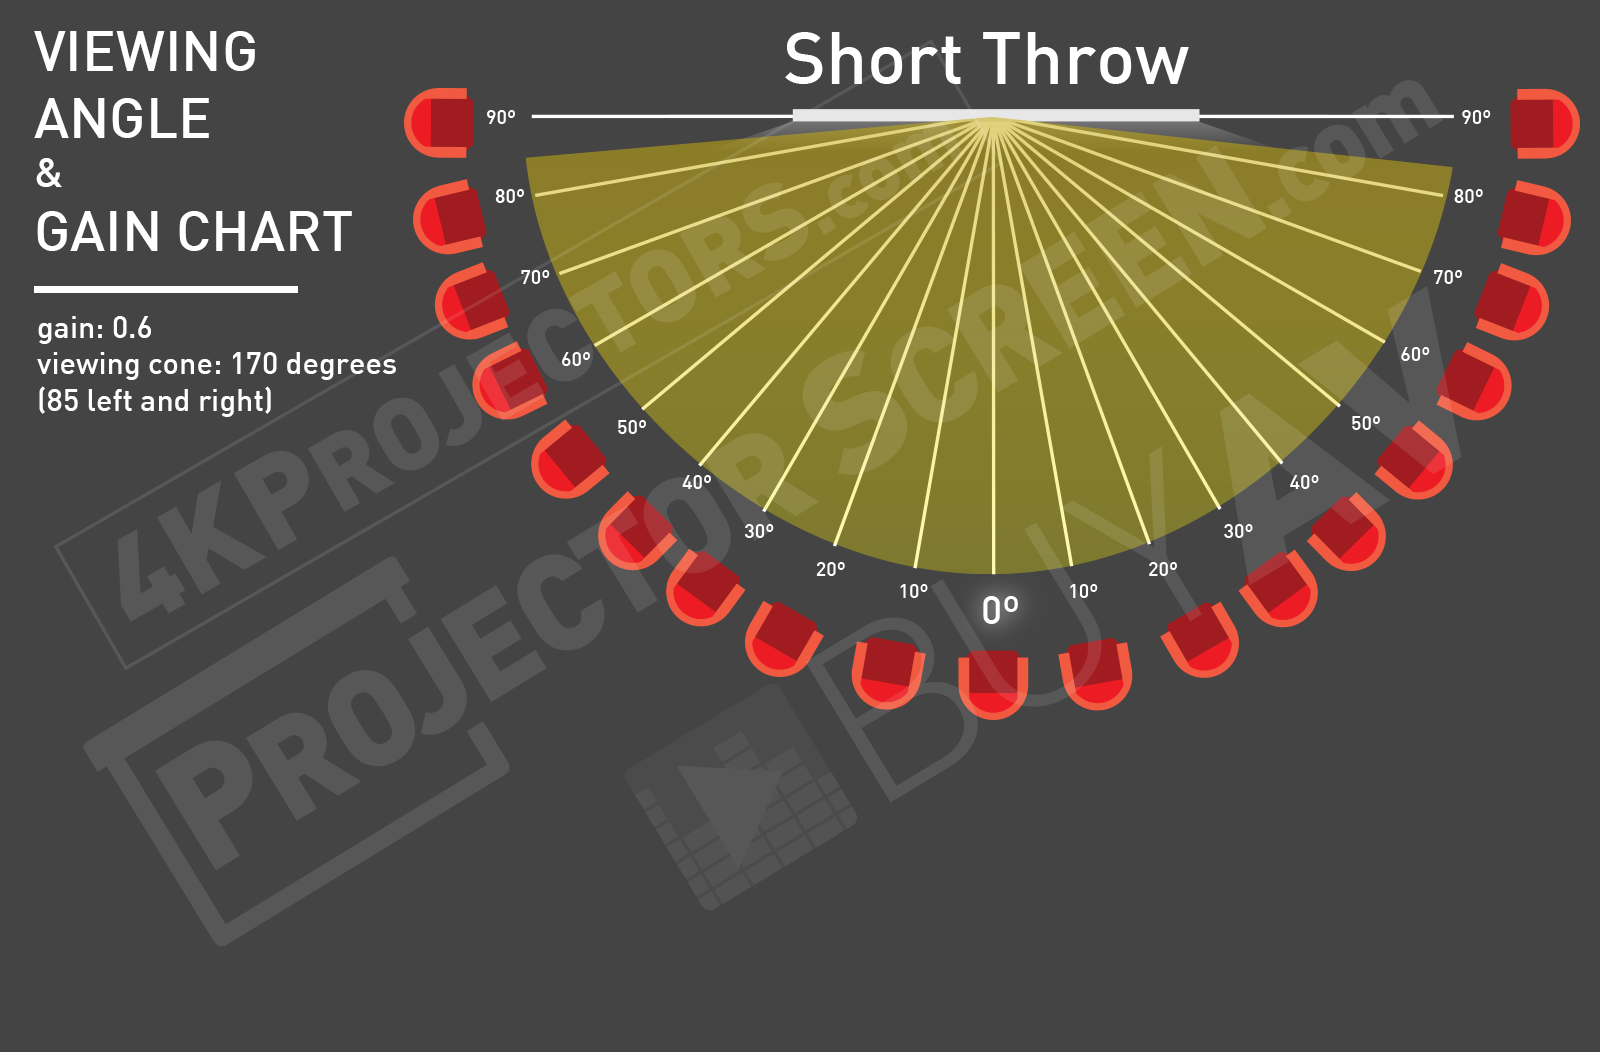 Screen Innovations Gain Chart - Short Throw